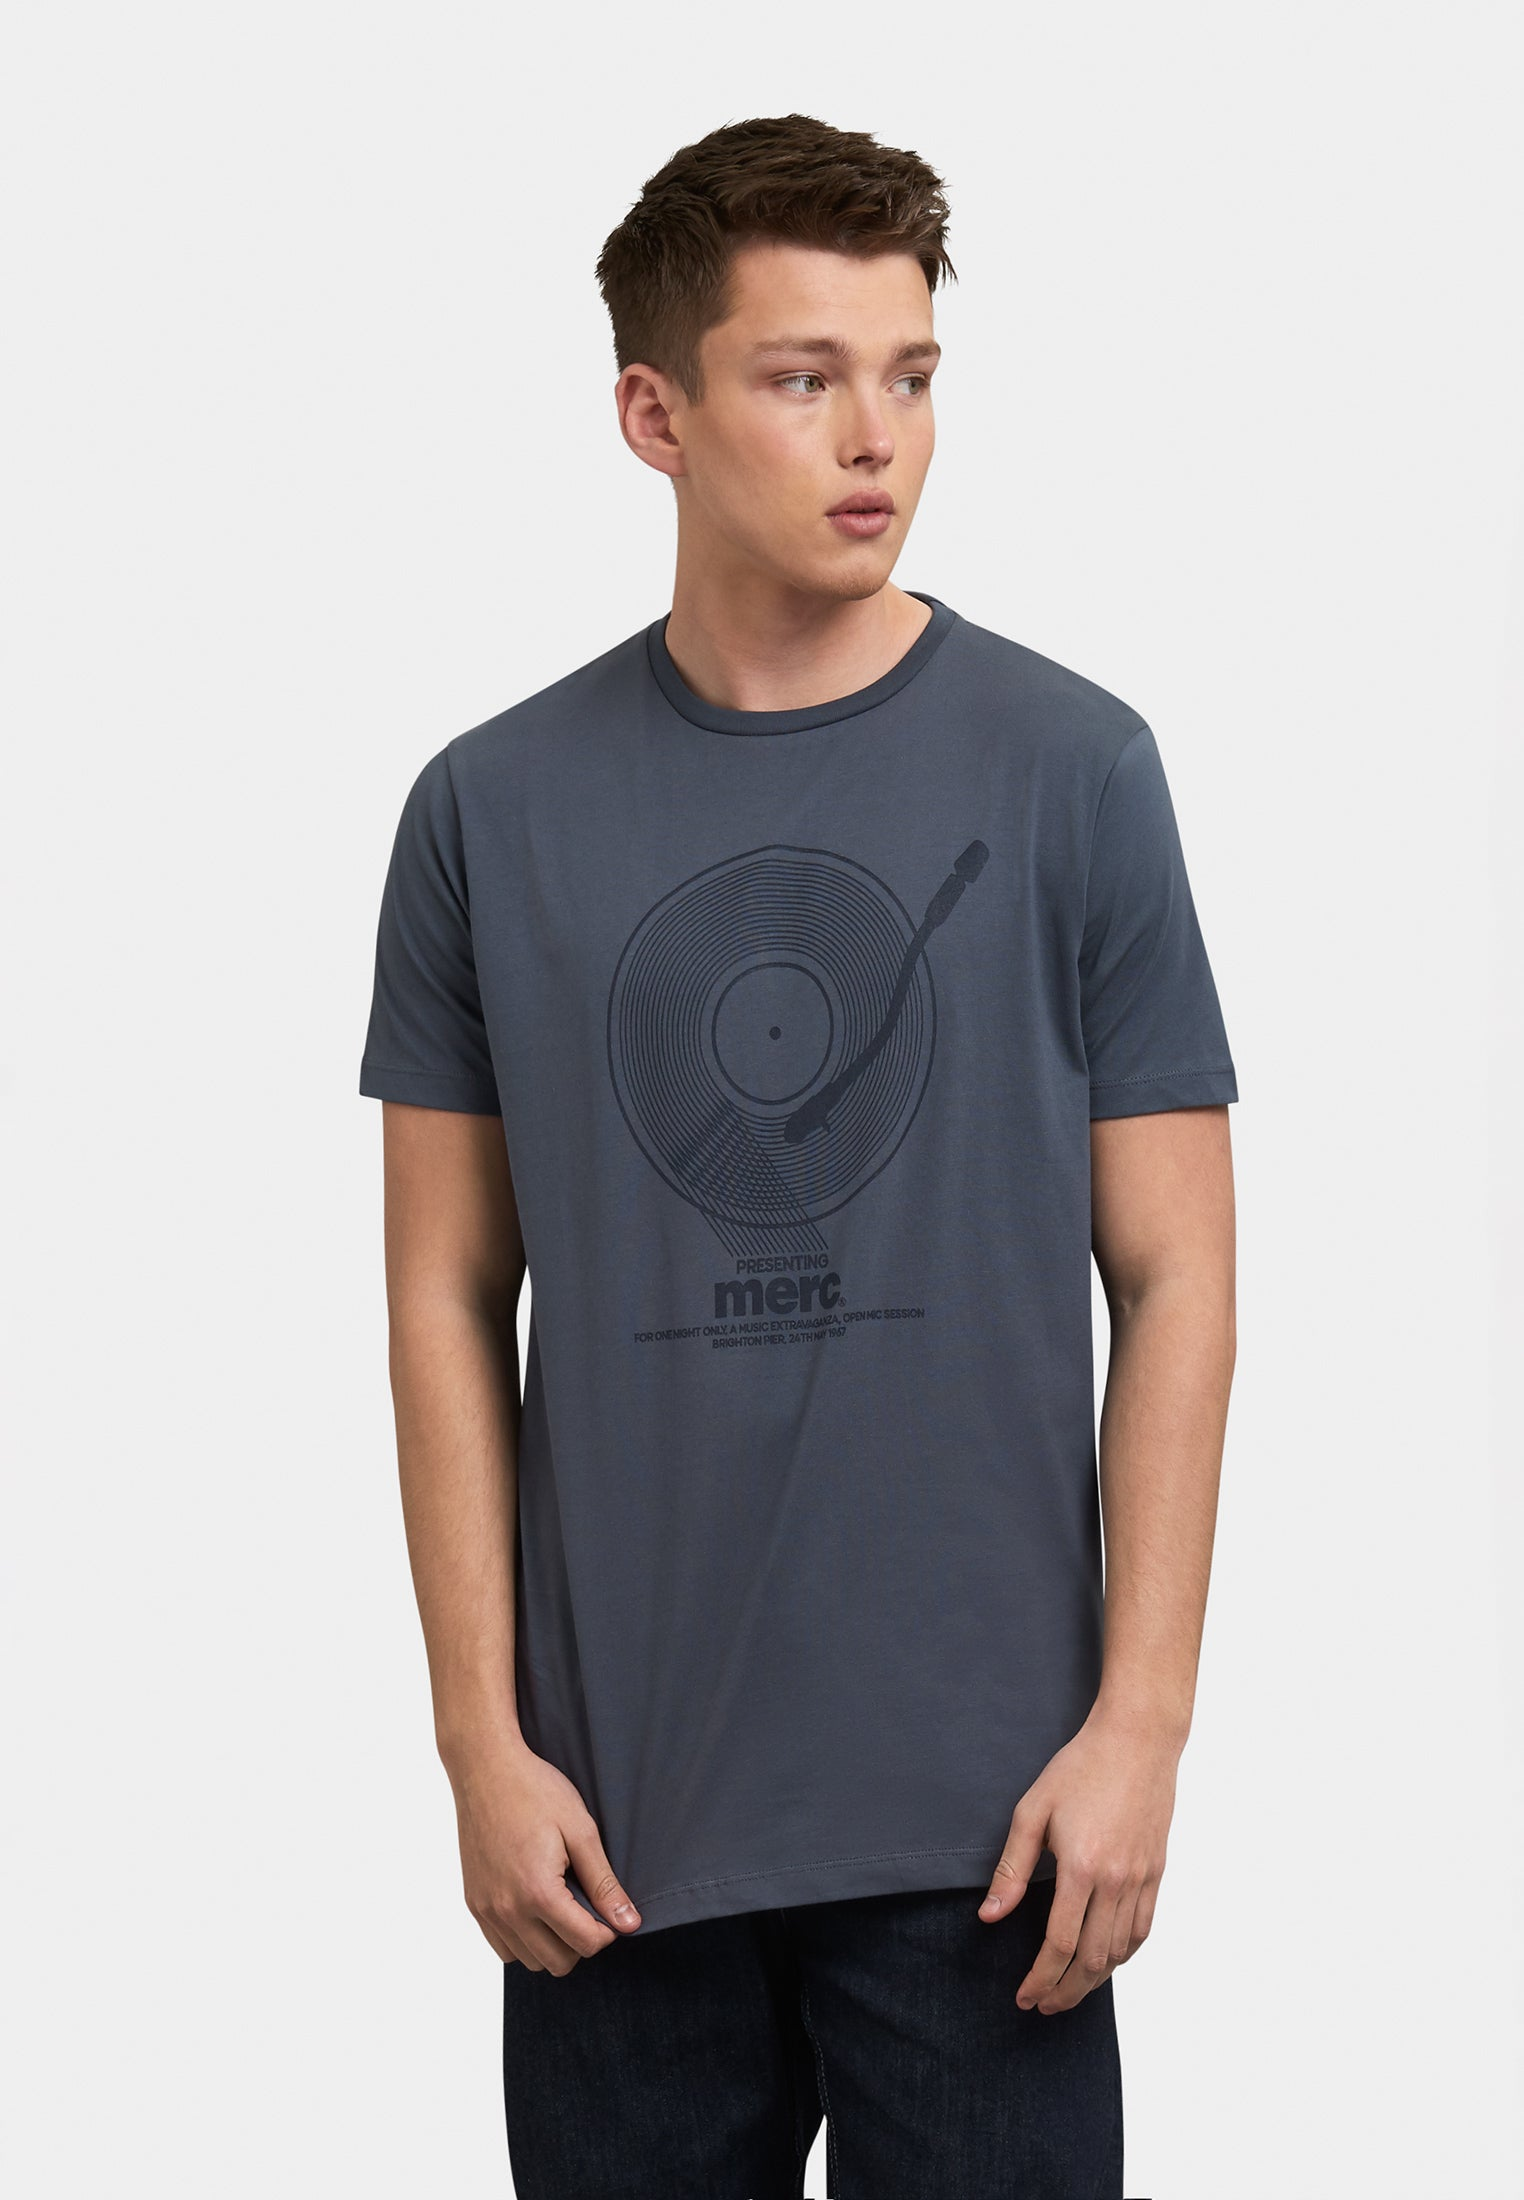 Toomey Vinyl Record Printed T-Shirt Front - Merc London